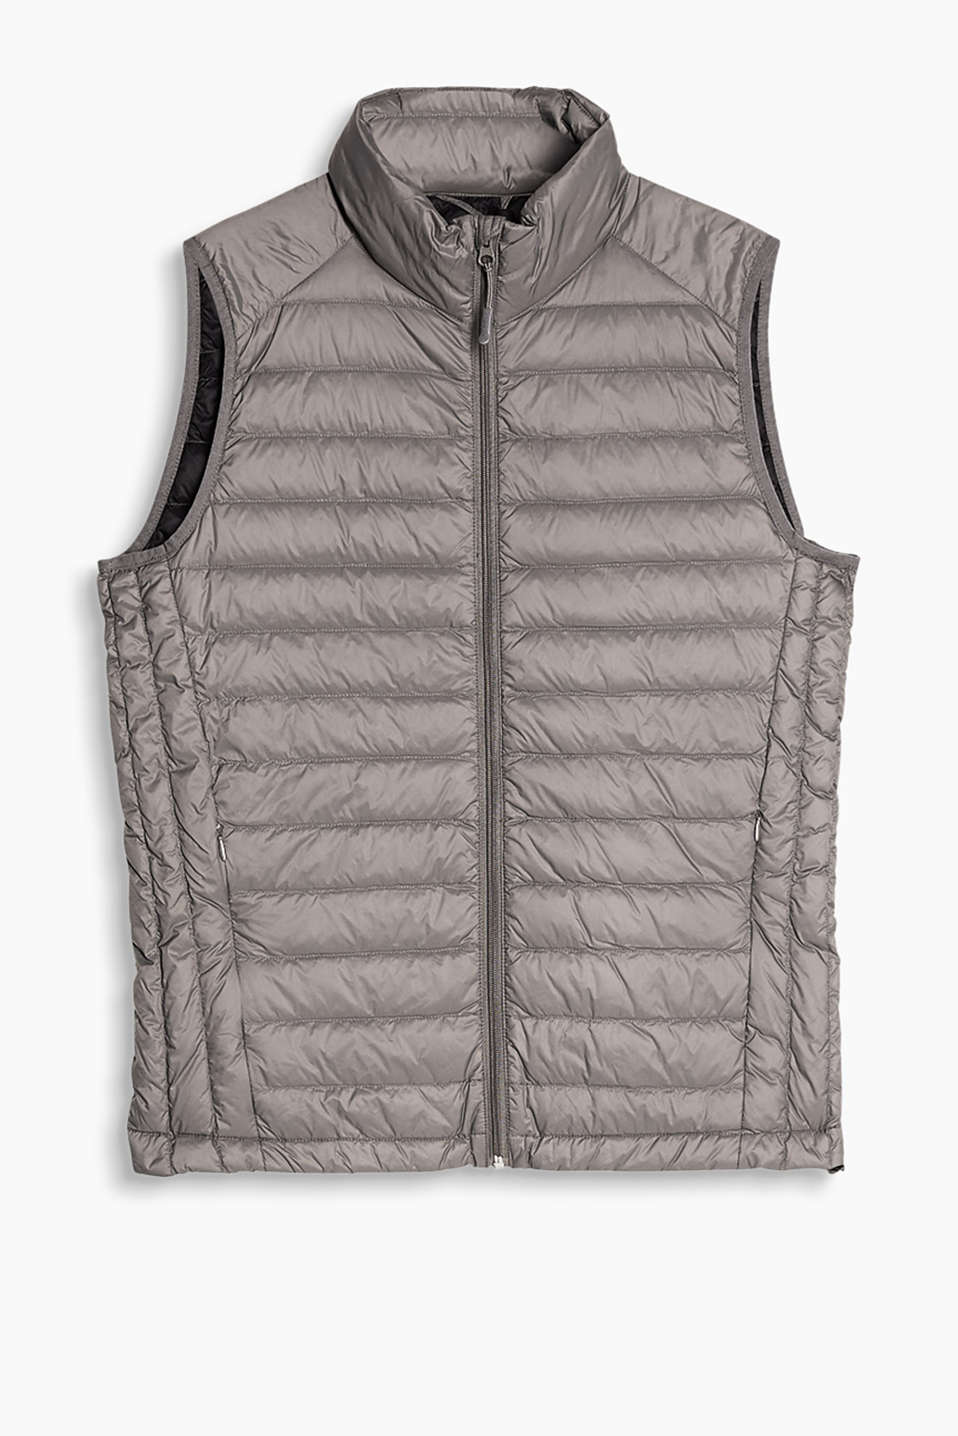 Lightweight quilted body warmer with RDS certified down/feather filling and zip pockets